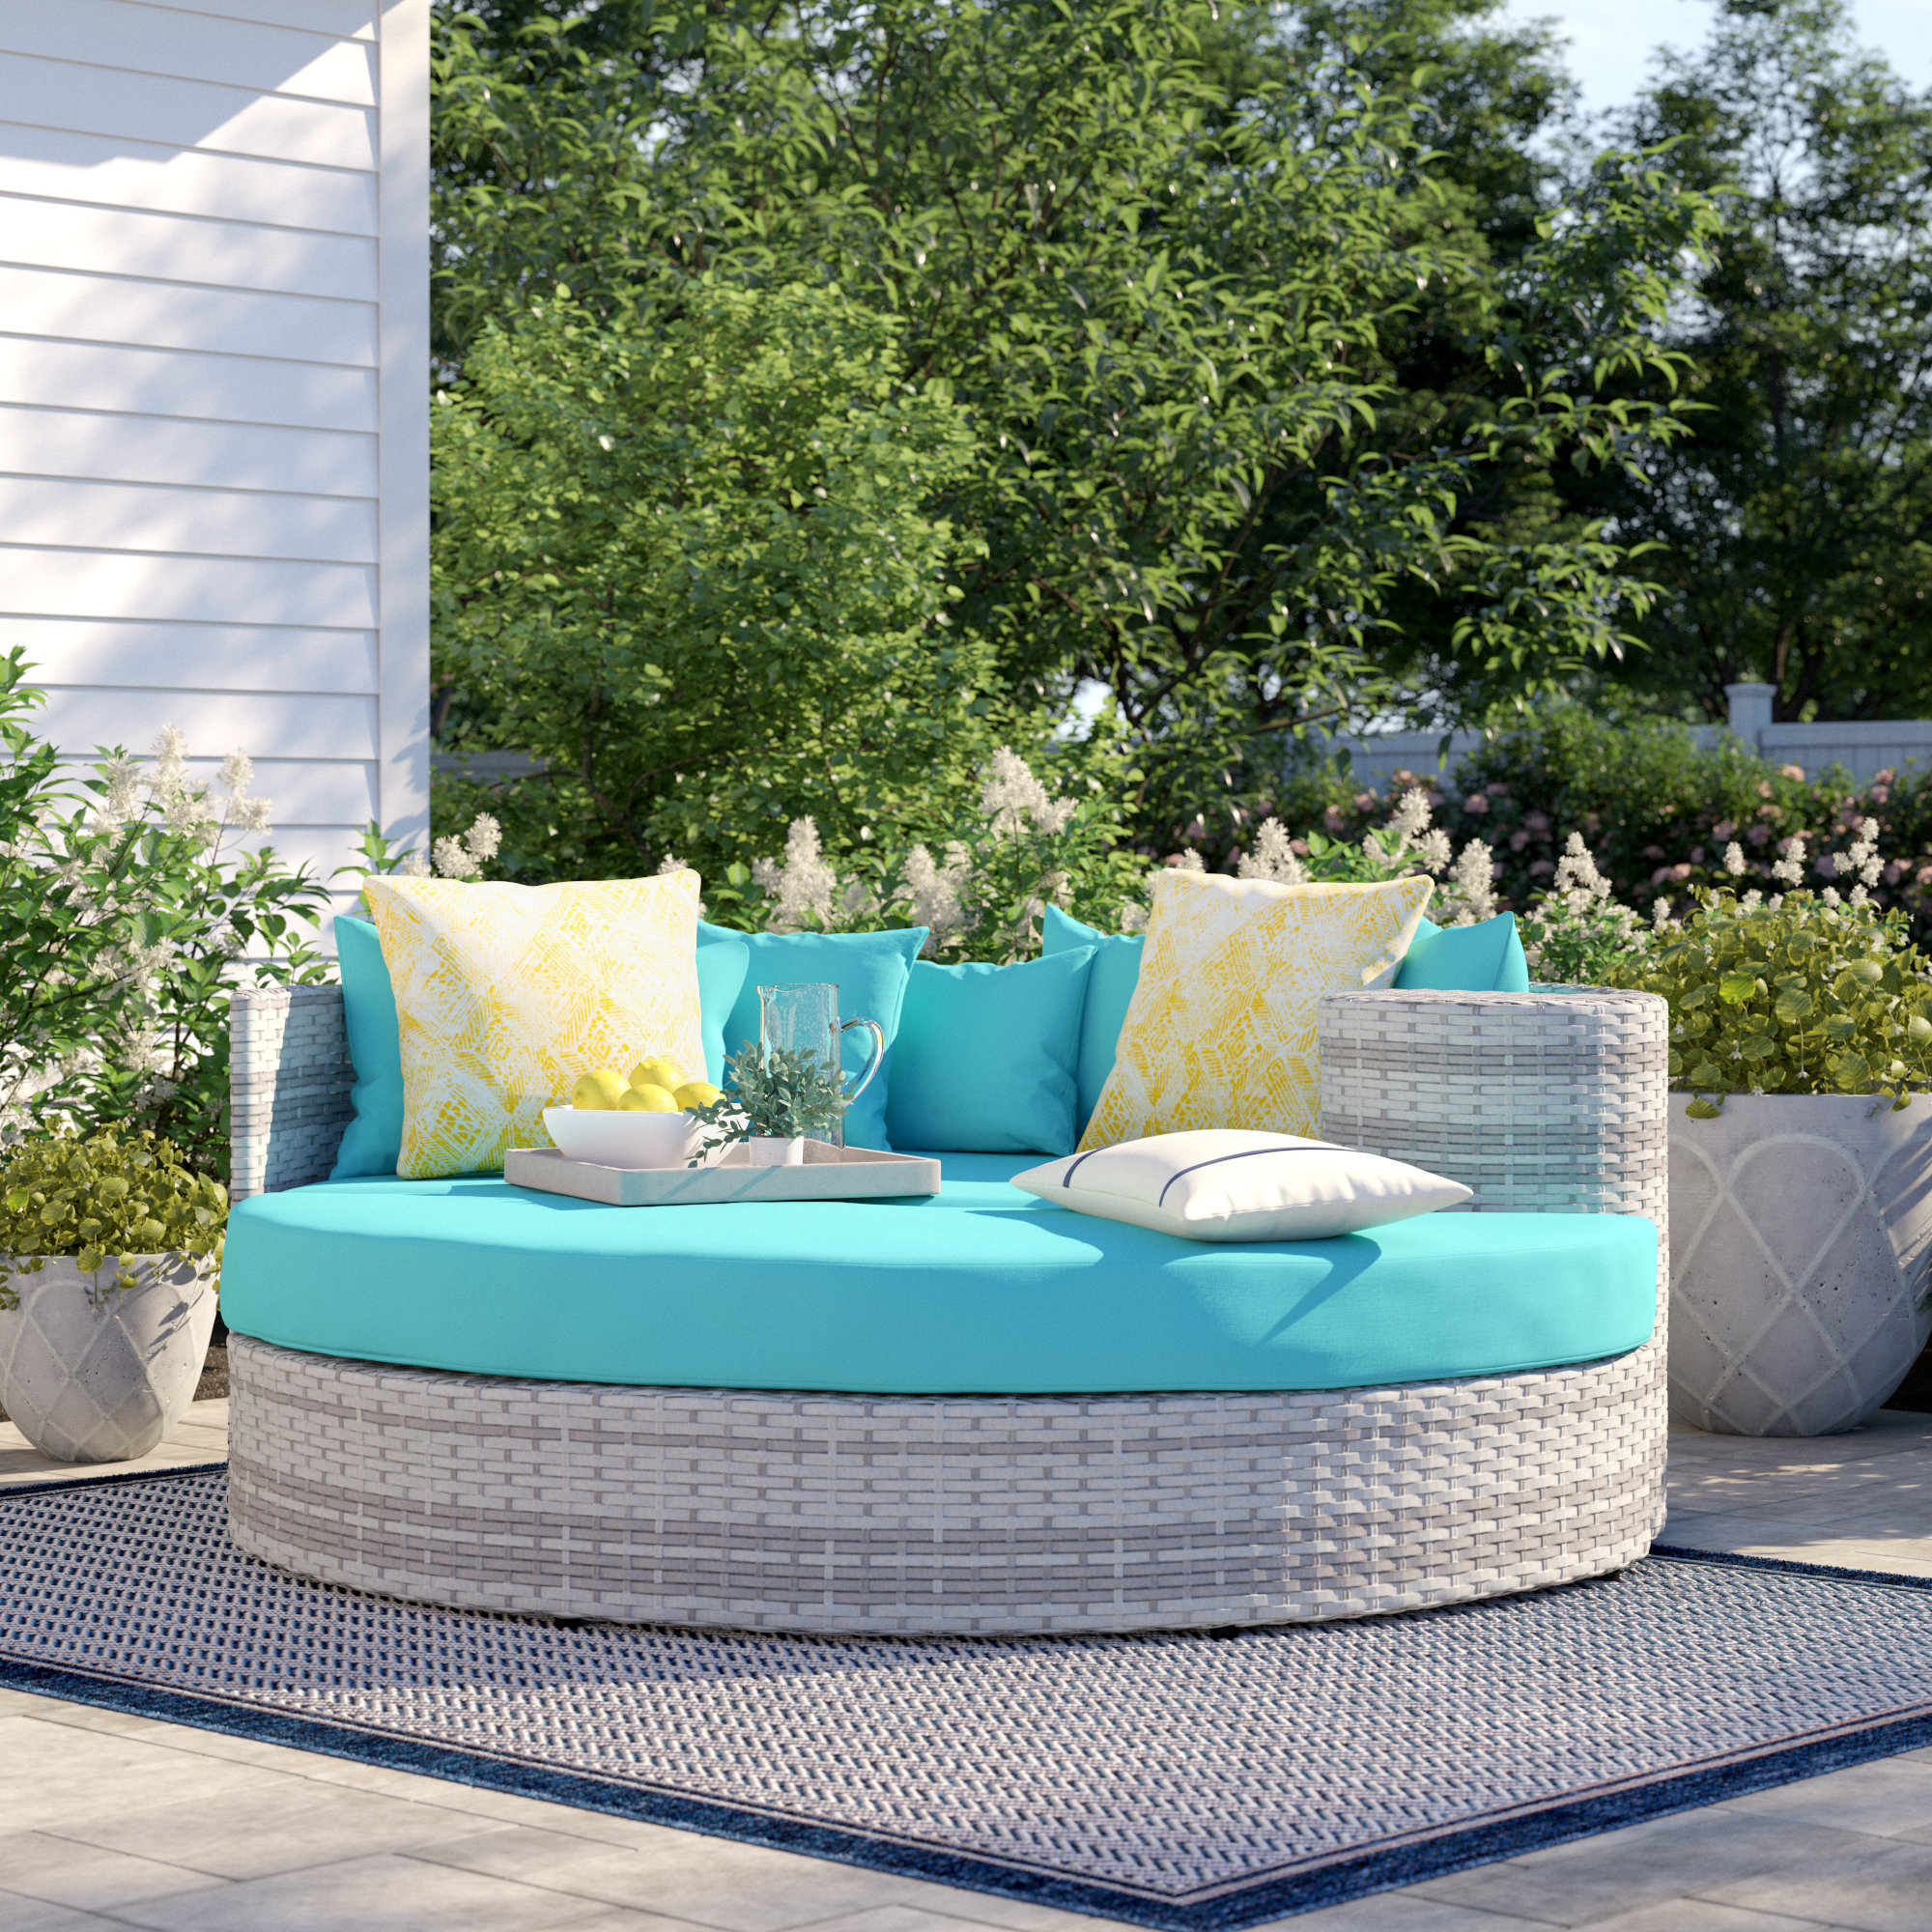 2019 Greening Outdoor Daybeds With Ottoman & Cushions Throughout Sol 72 Outdoor Falmouth Patio Daybed With Cushions & Reviews (View 1 of 20)